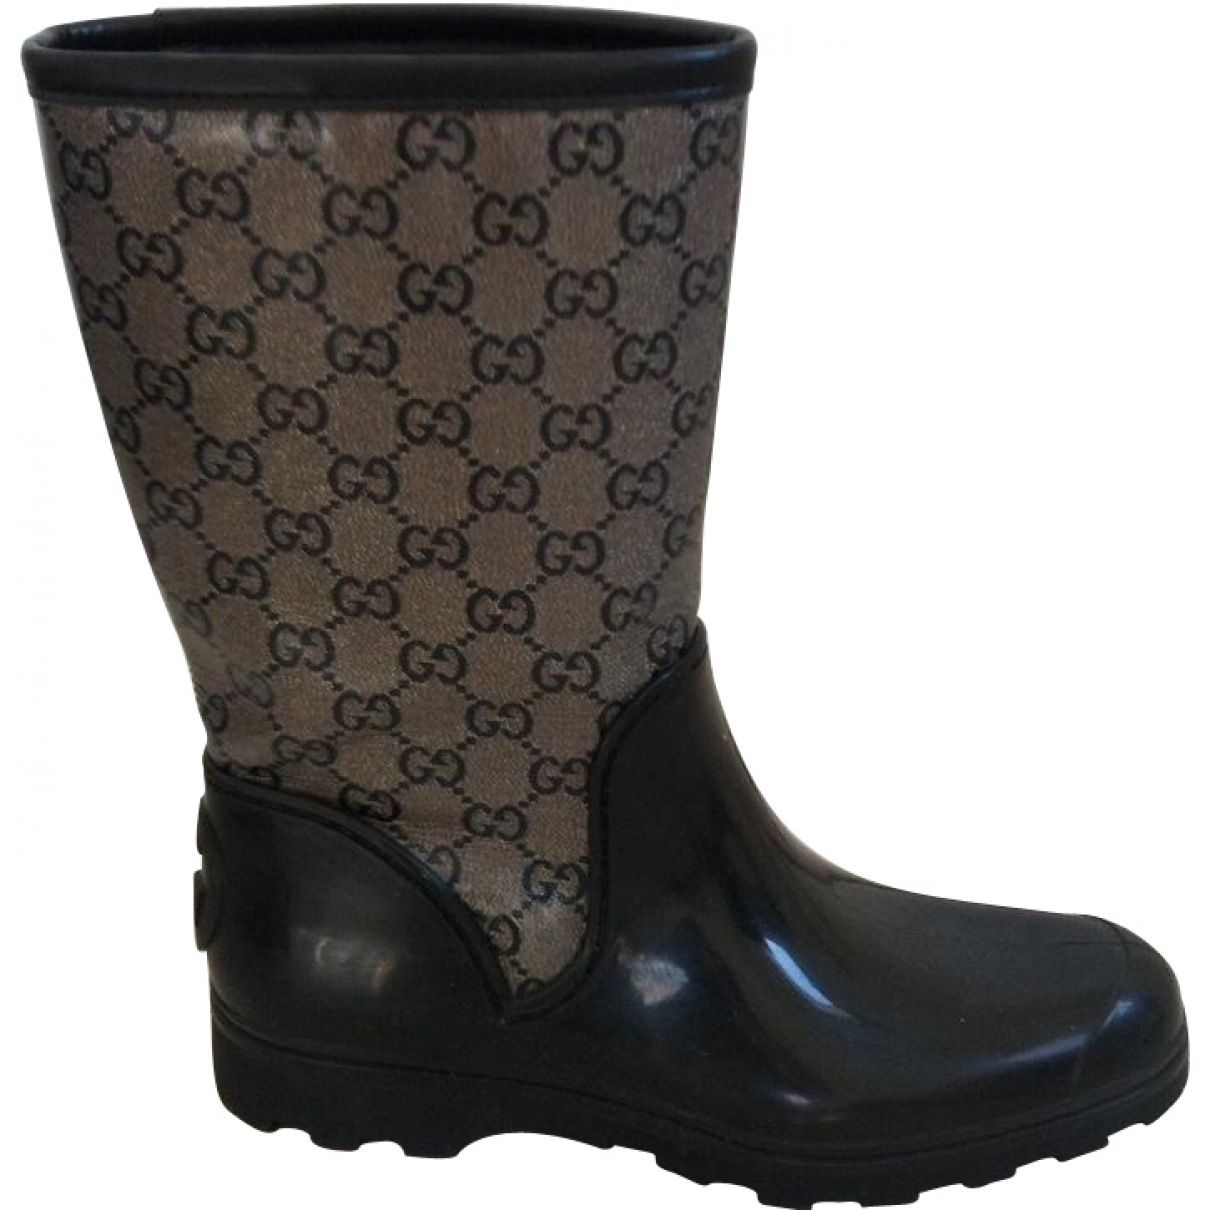 Have you fallen in love with any of the Rubber Boots from the brandname GUCCI? Description from vestiairecollective.com. I searched for this on bing.com/images